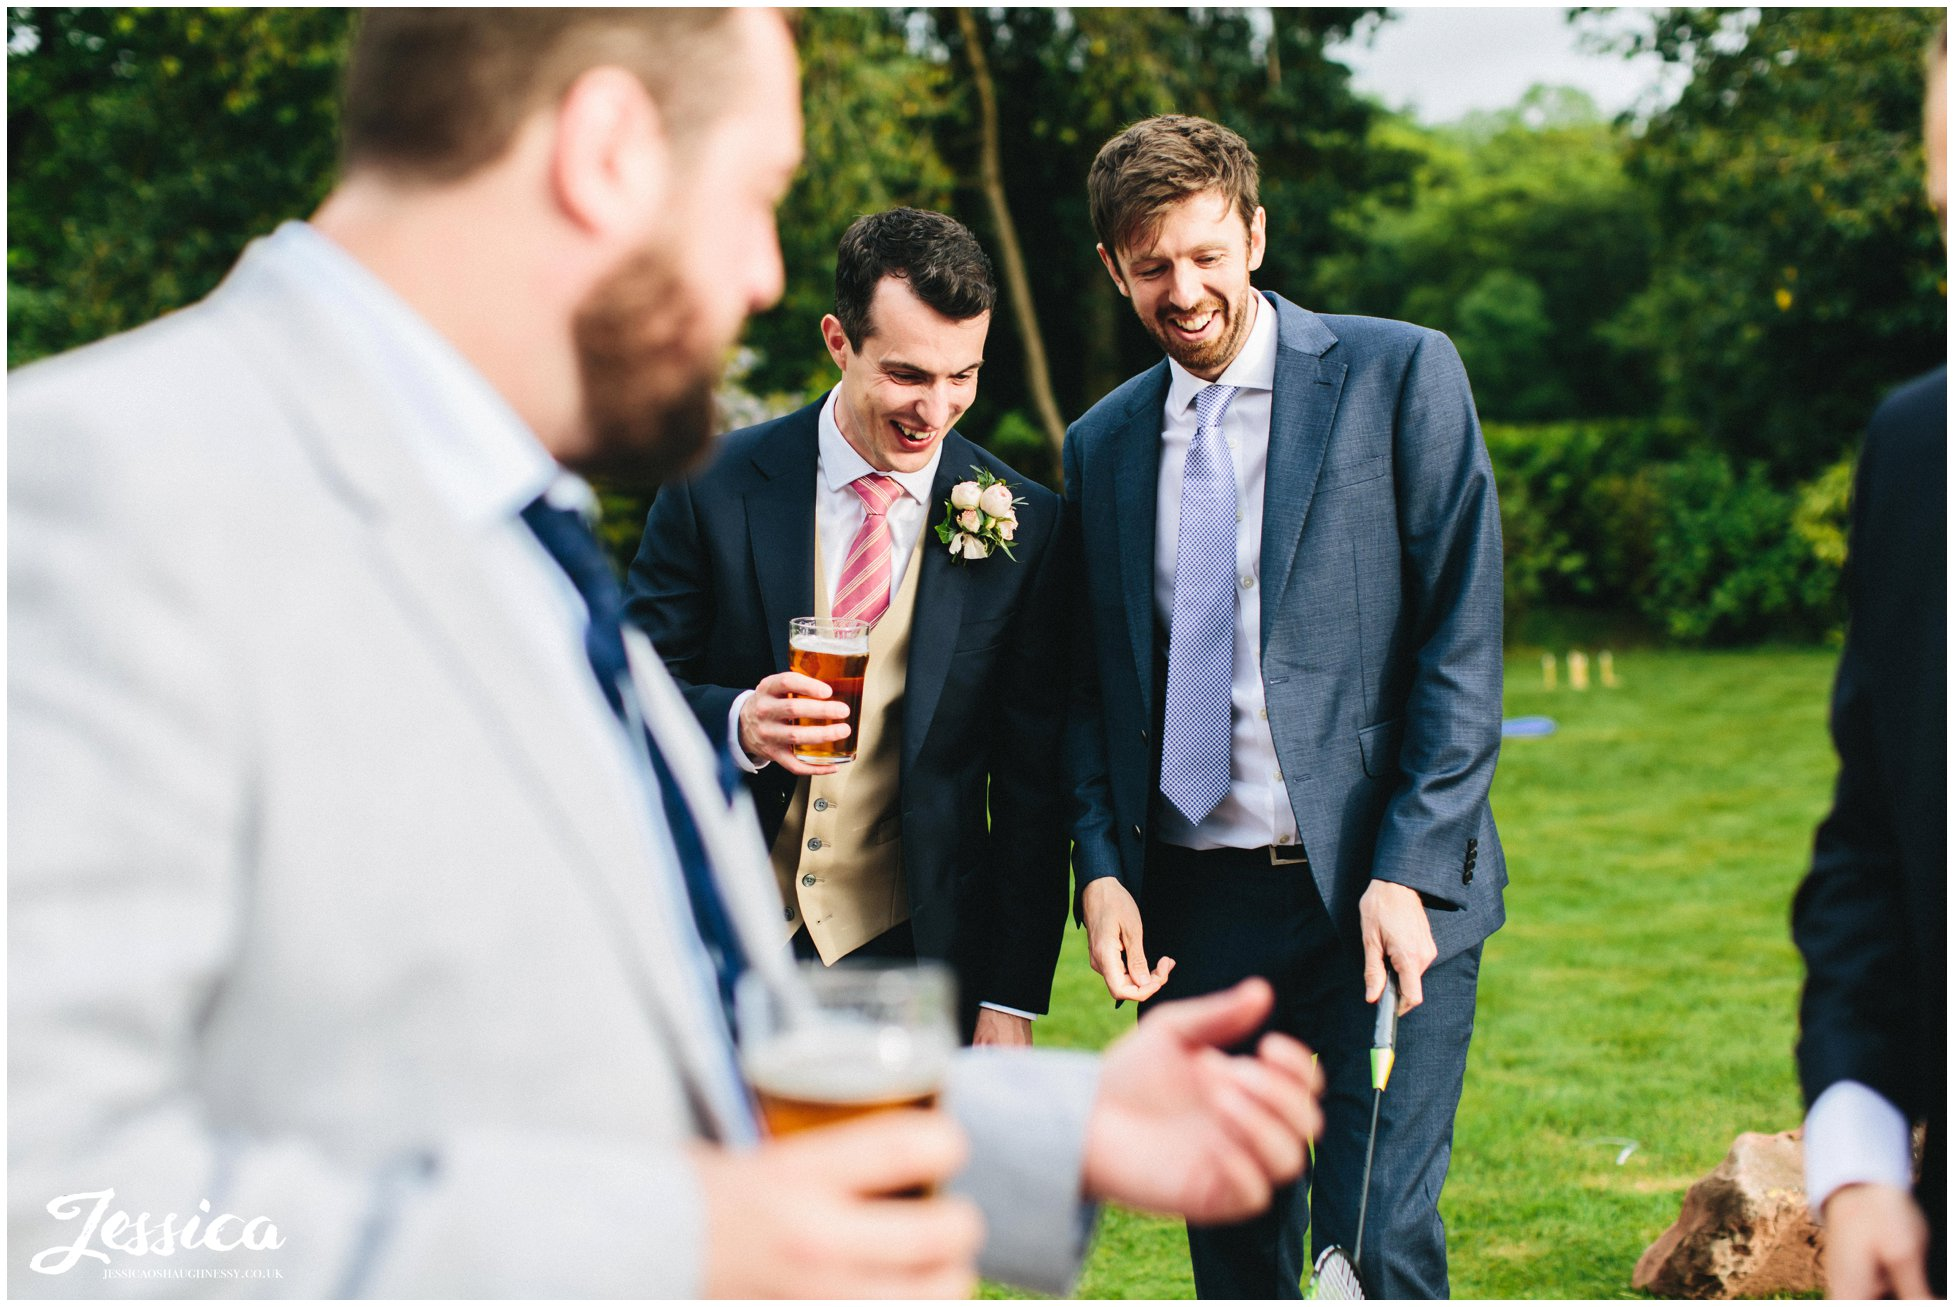 groom jokes with friends in the venue gardens